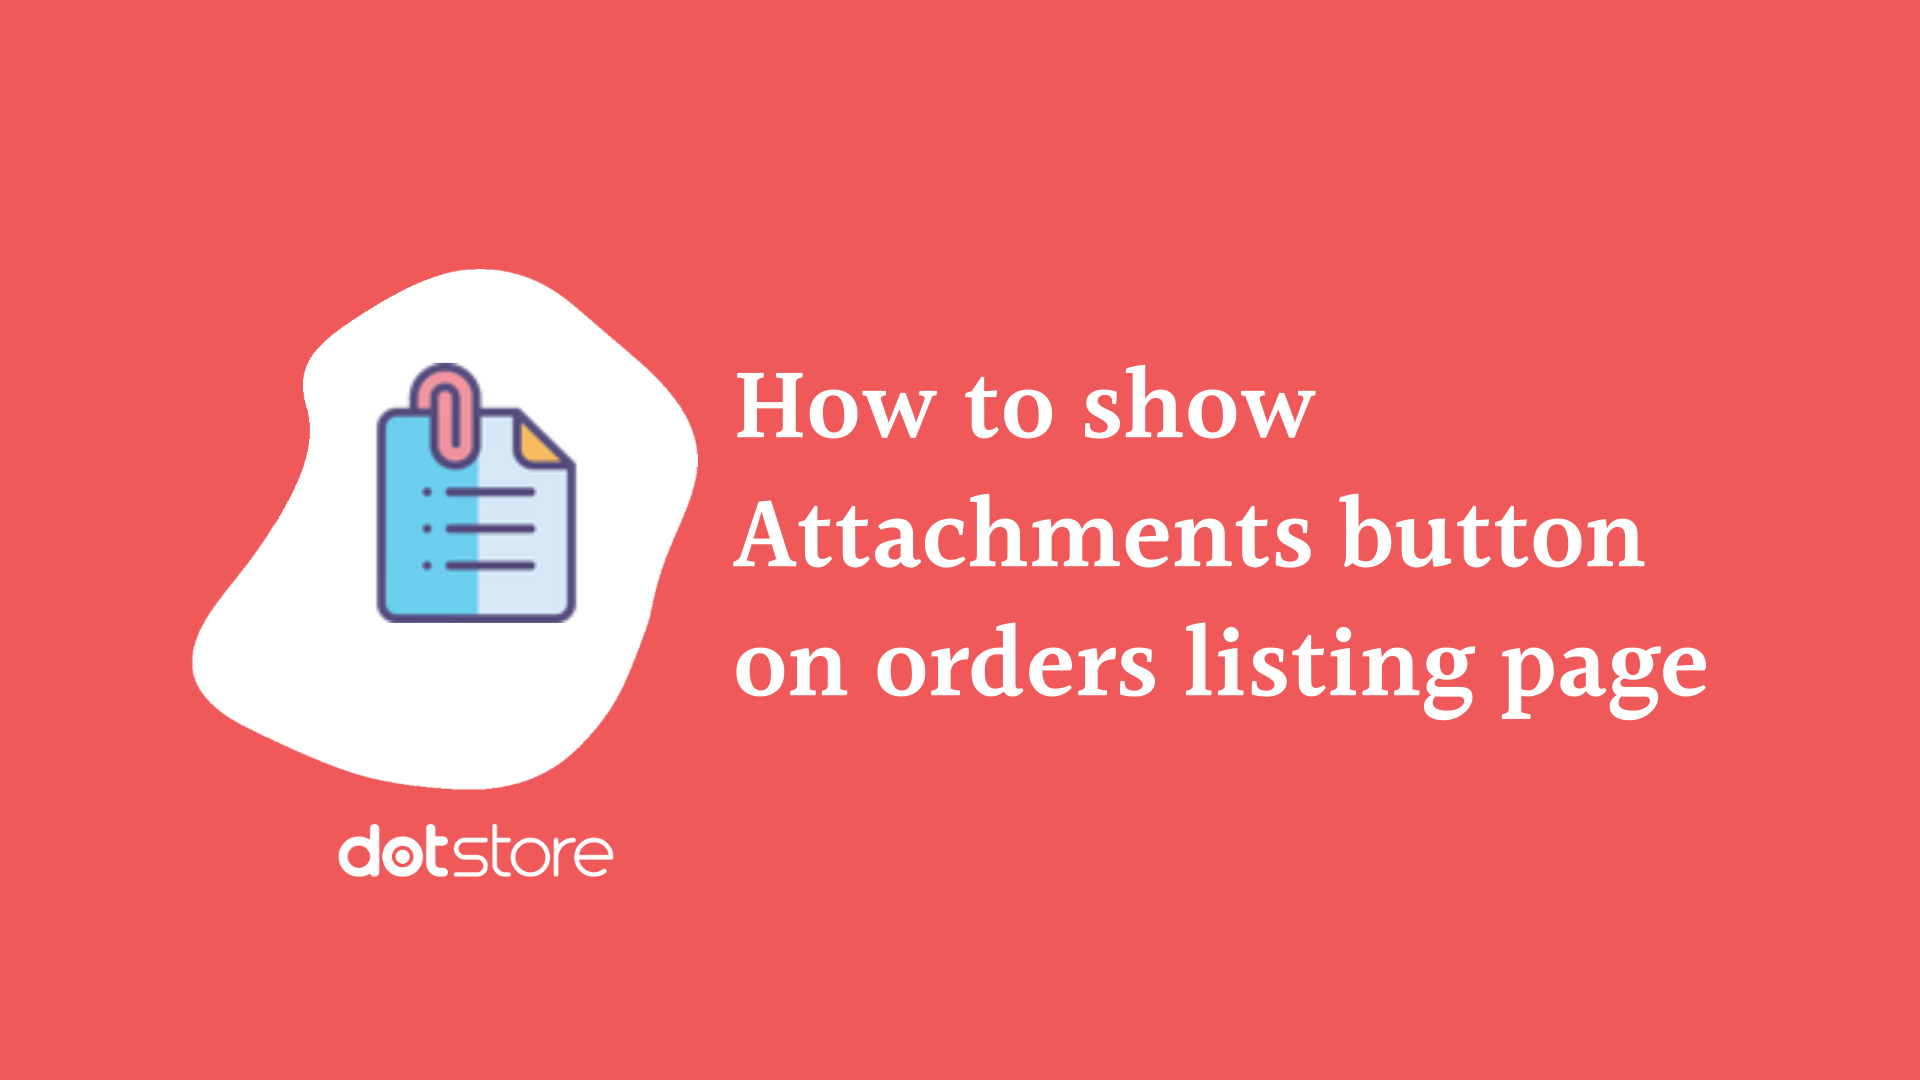 How to Show Attachments Button on Orders Listing Page?